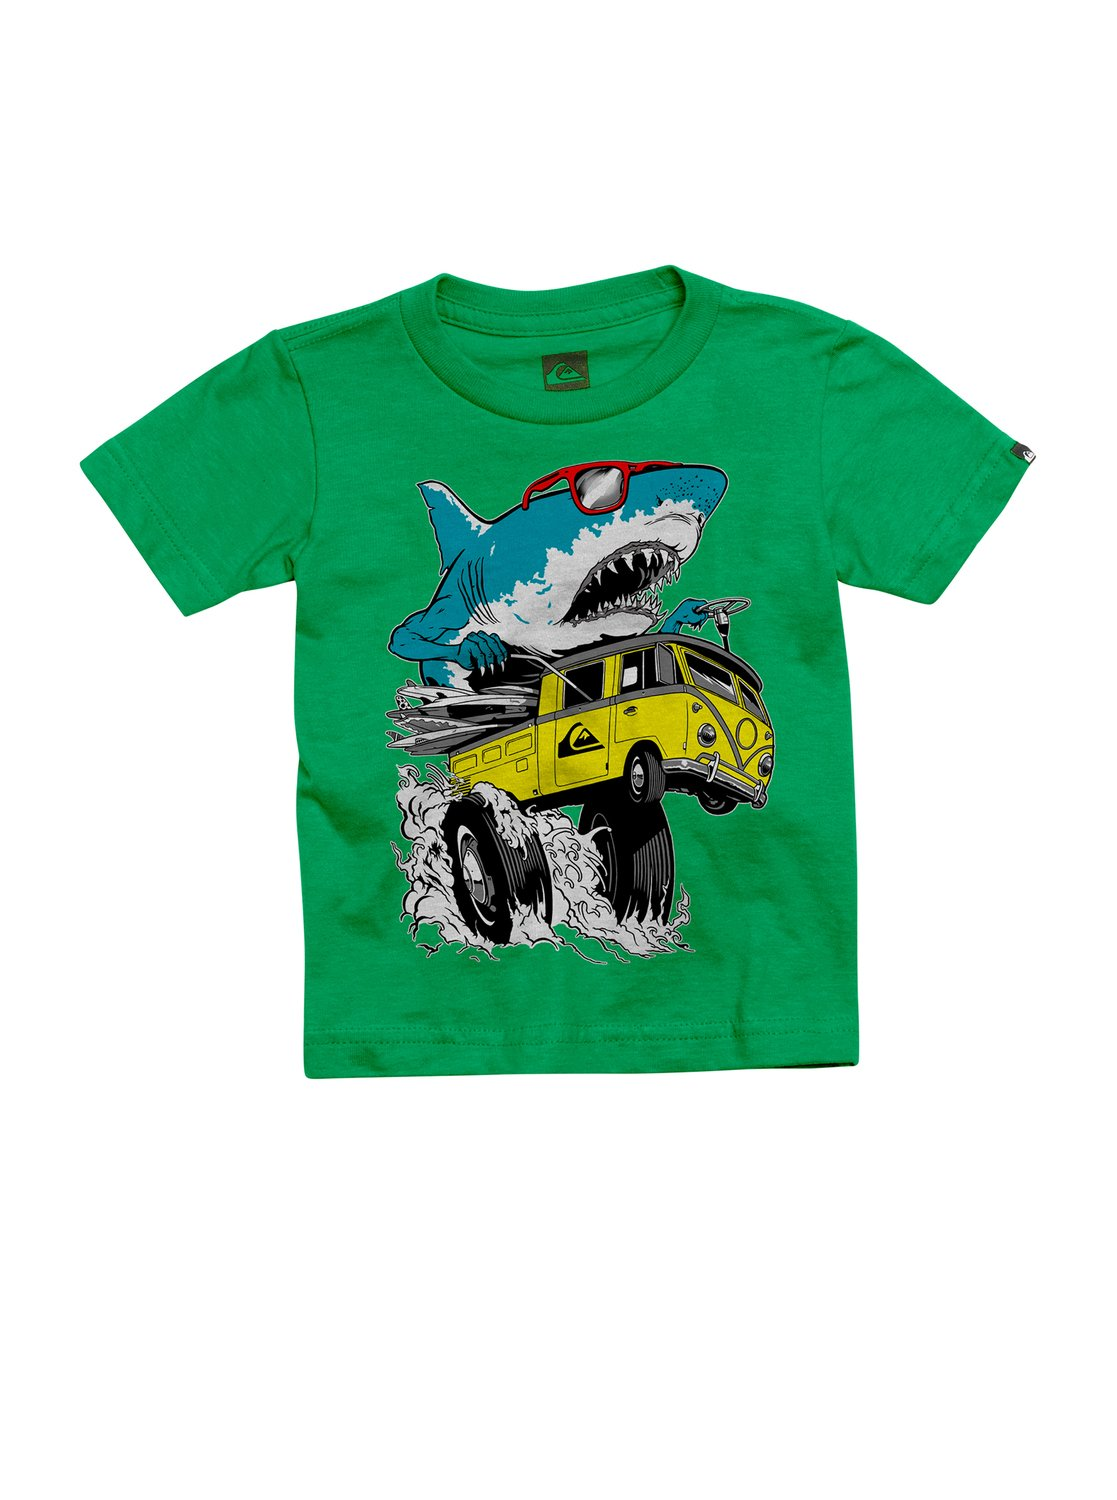 baby shark attack t shirt aqizt00086  0 baby shark attack t shirt aqizt00086